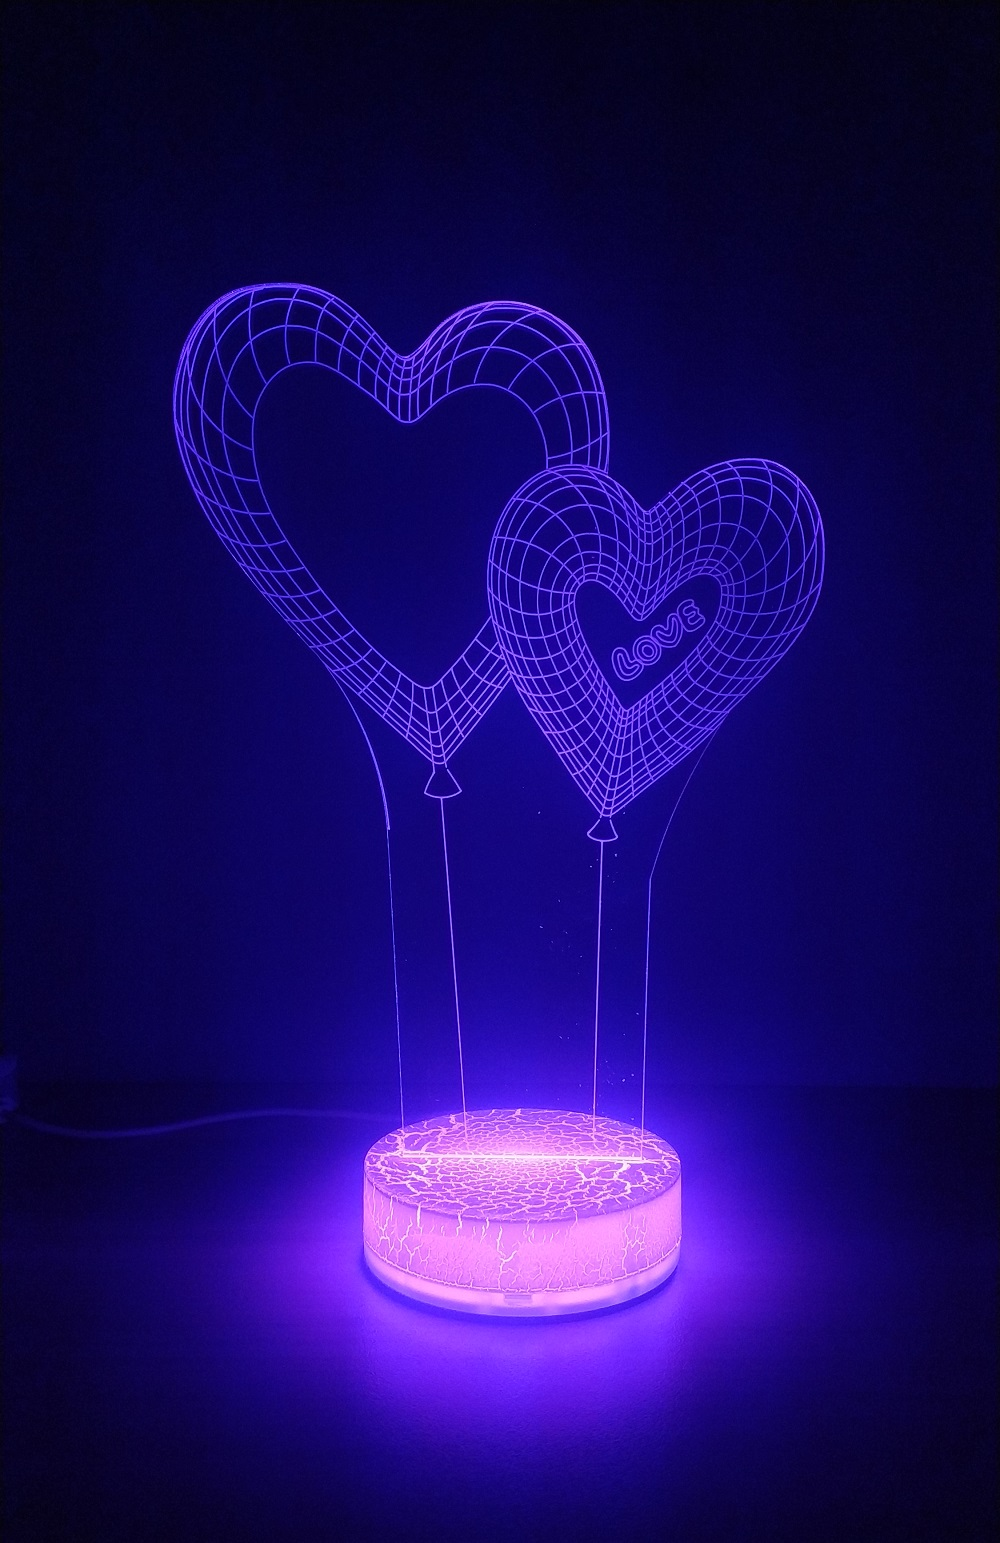 https://delshop.bg/image/catalog/3D%20night%20light/Hearts-6.jpg